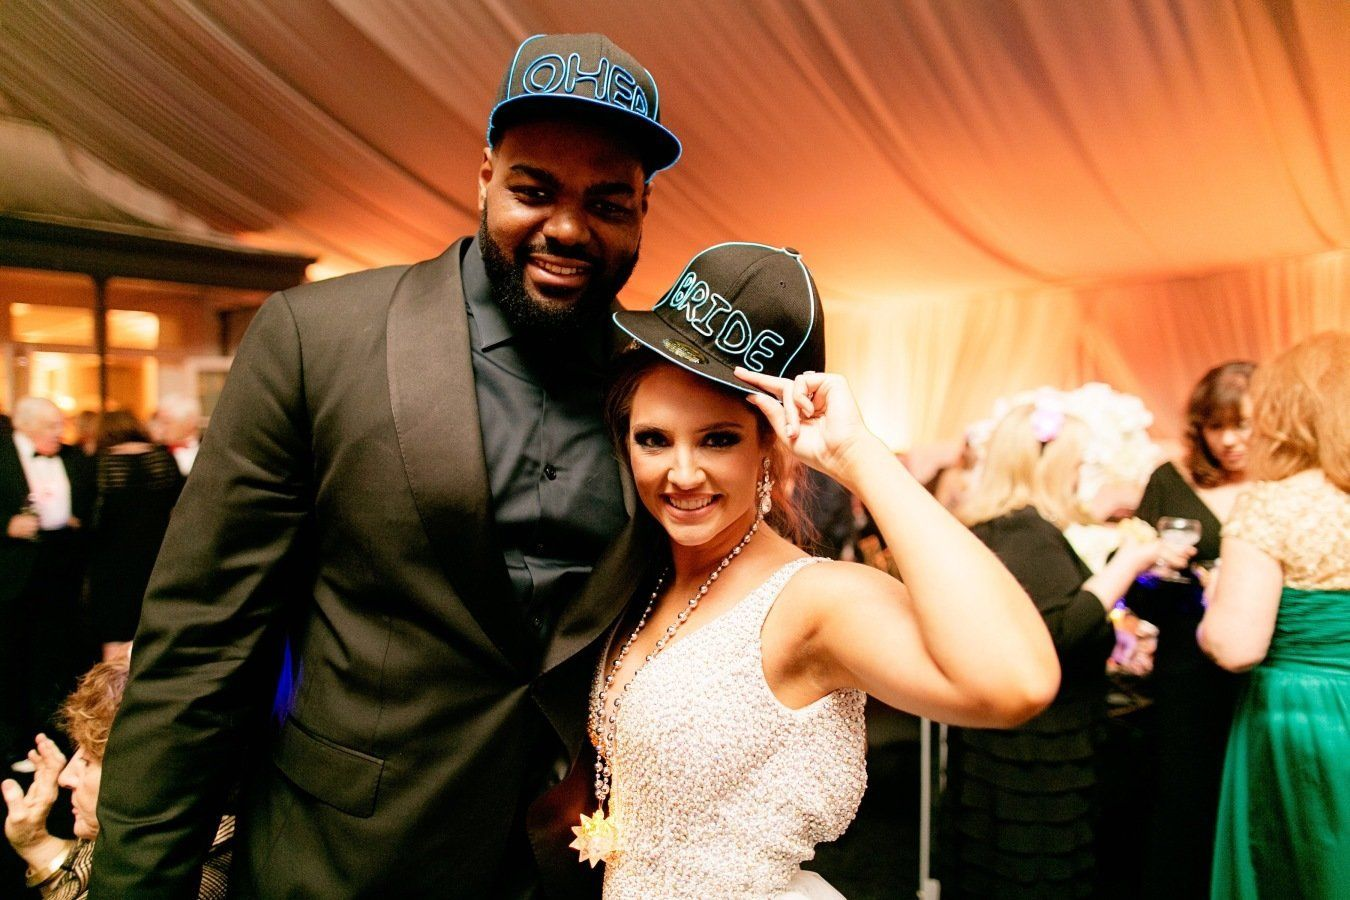 Michael Oher, the bride's adopted brother, currently plays for the Carolina Panthers.